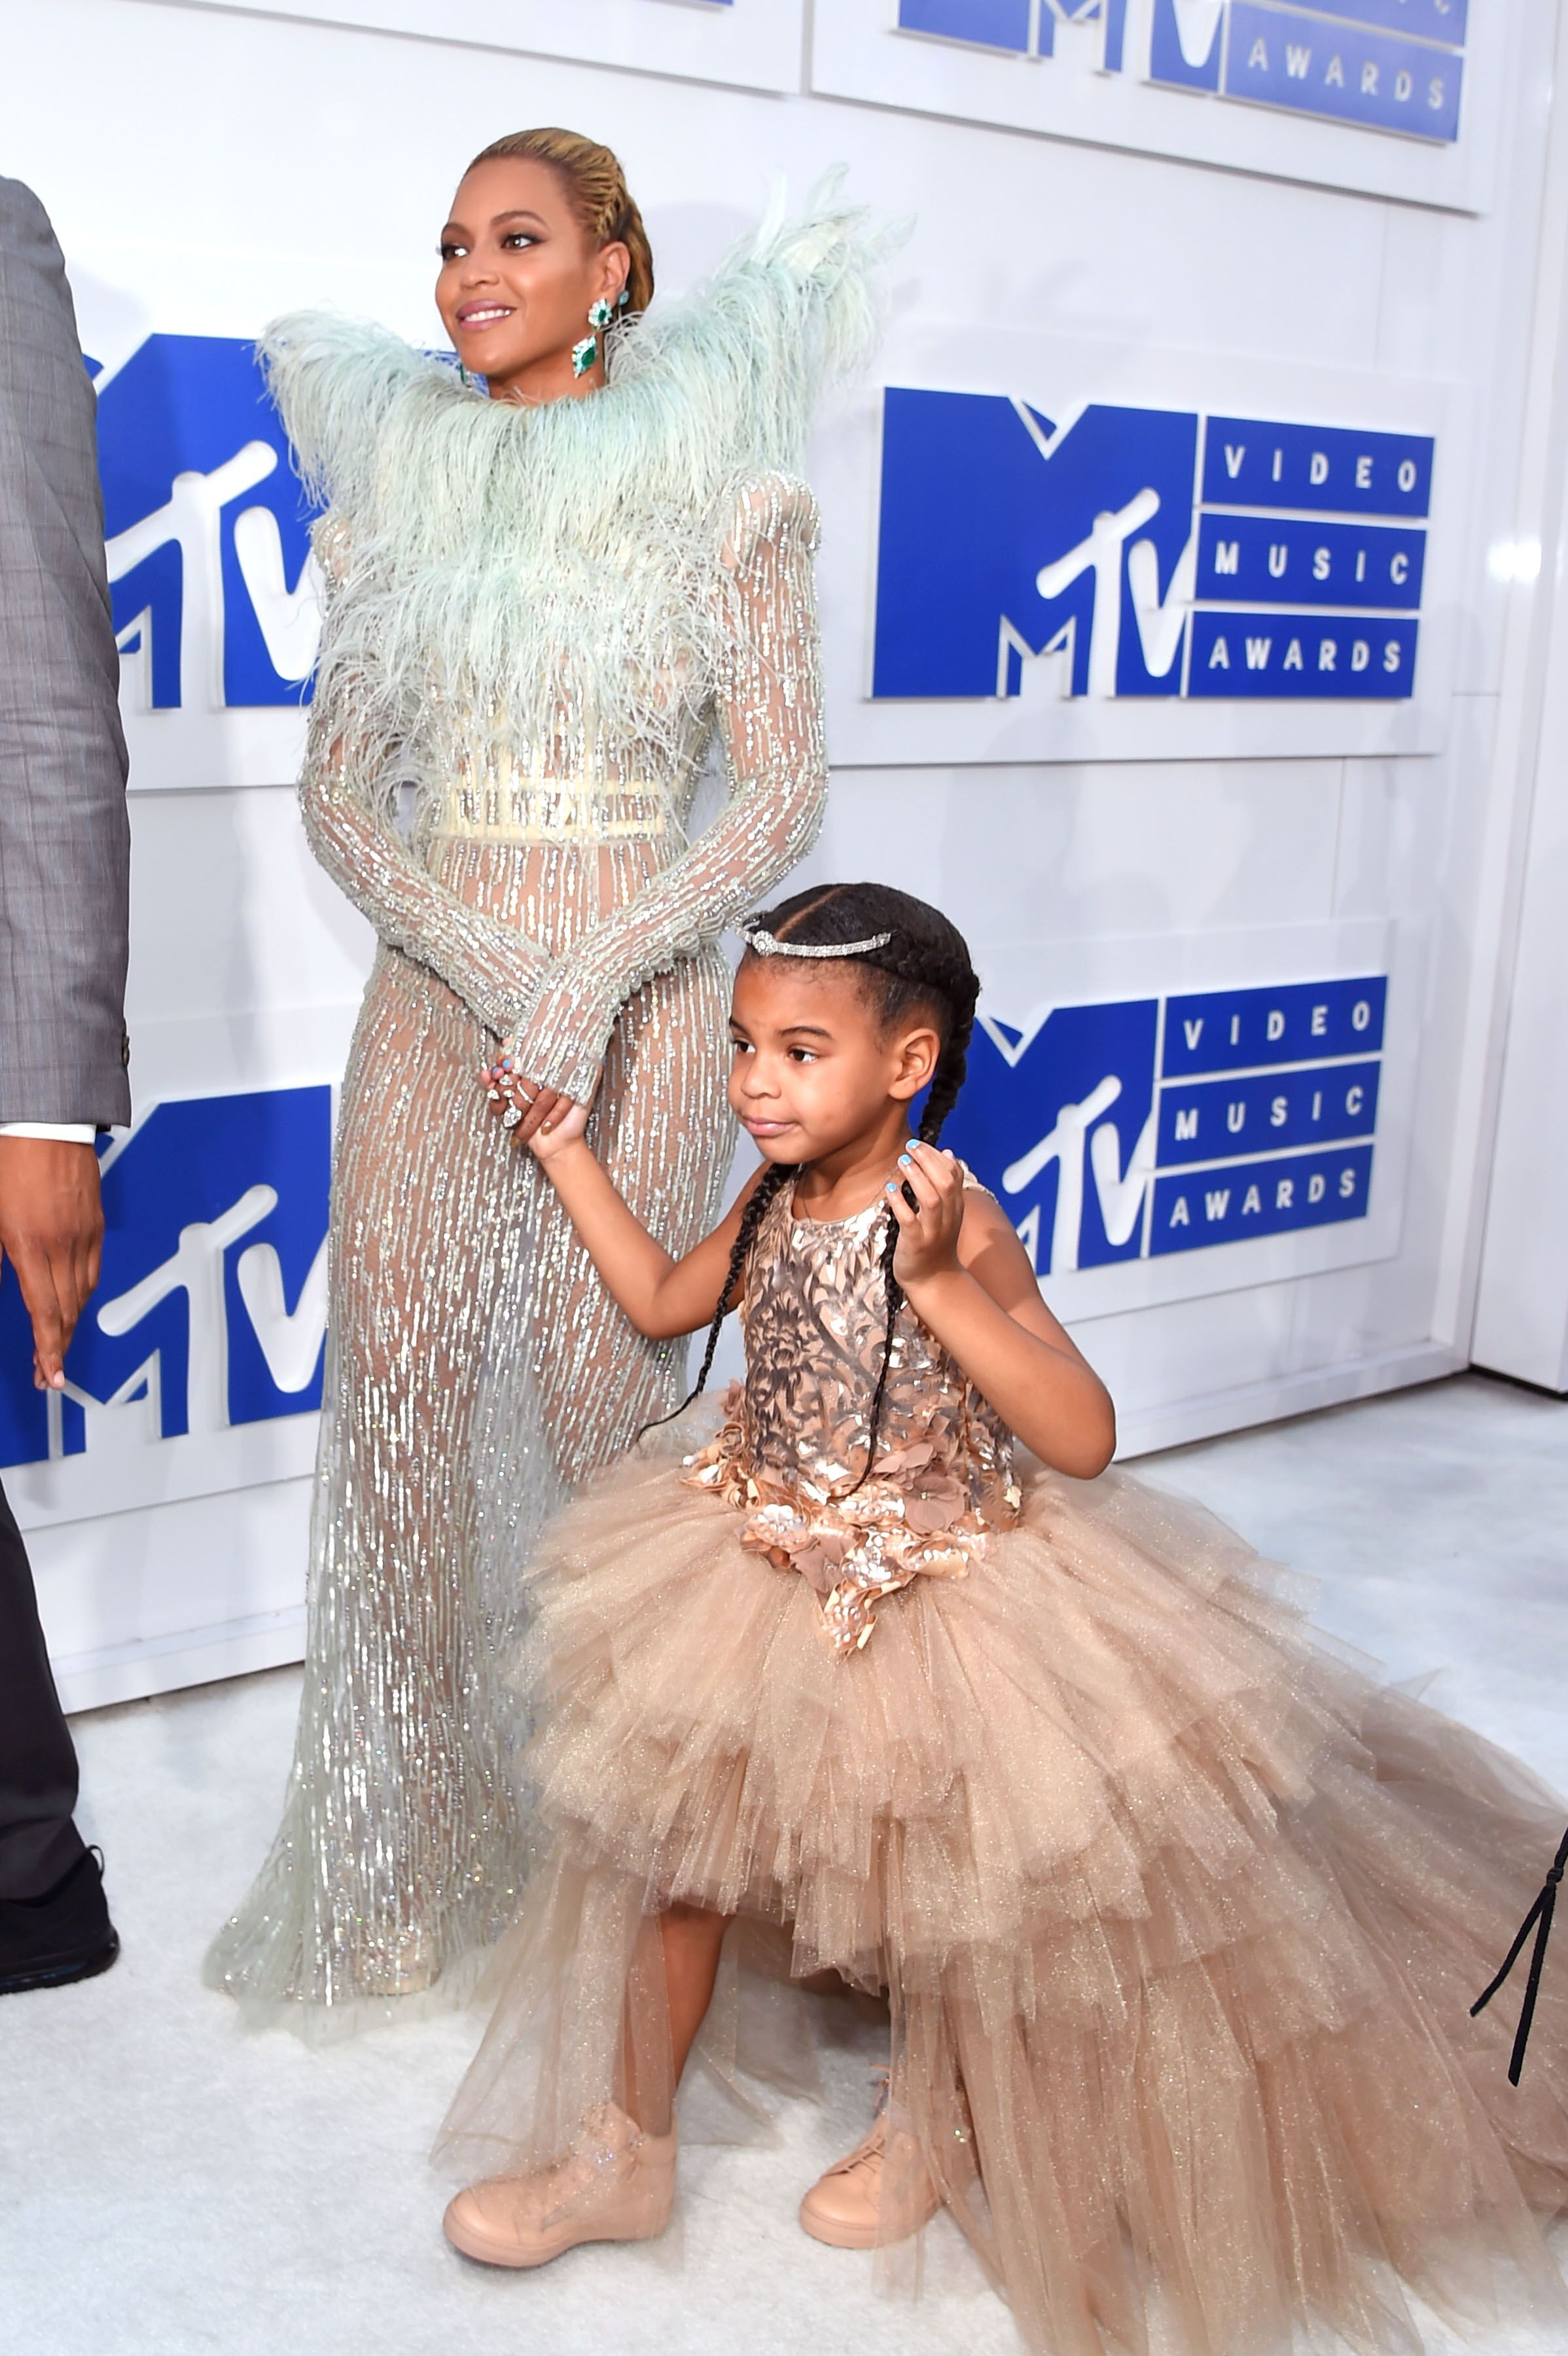 Beyoncé and Blue Ivy at the MTV Music Video Awards in 2016/ Source: Getty Images